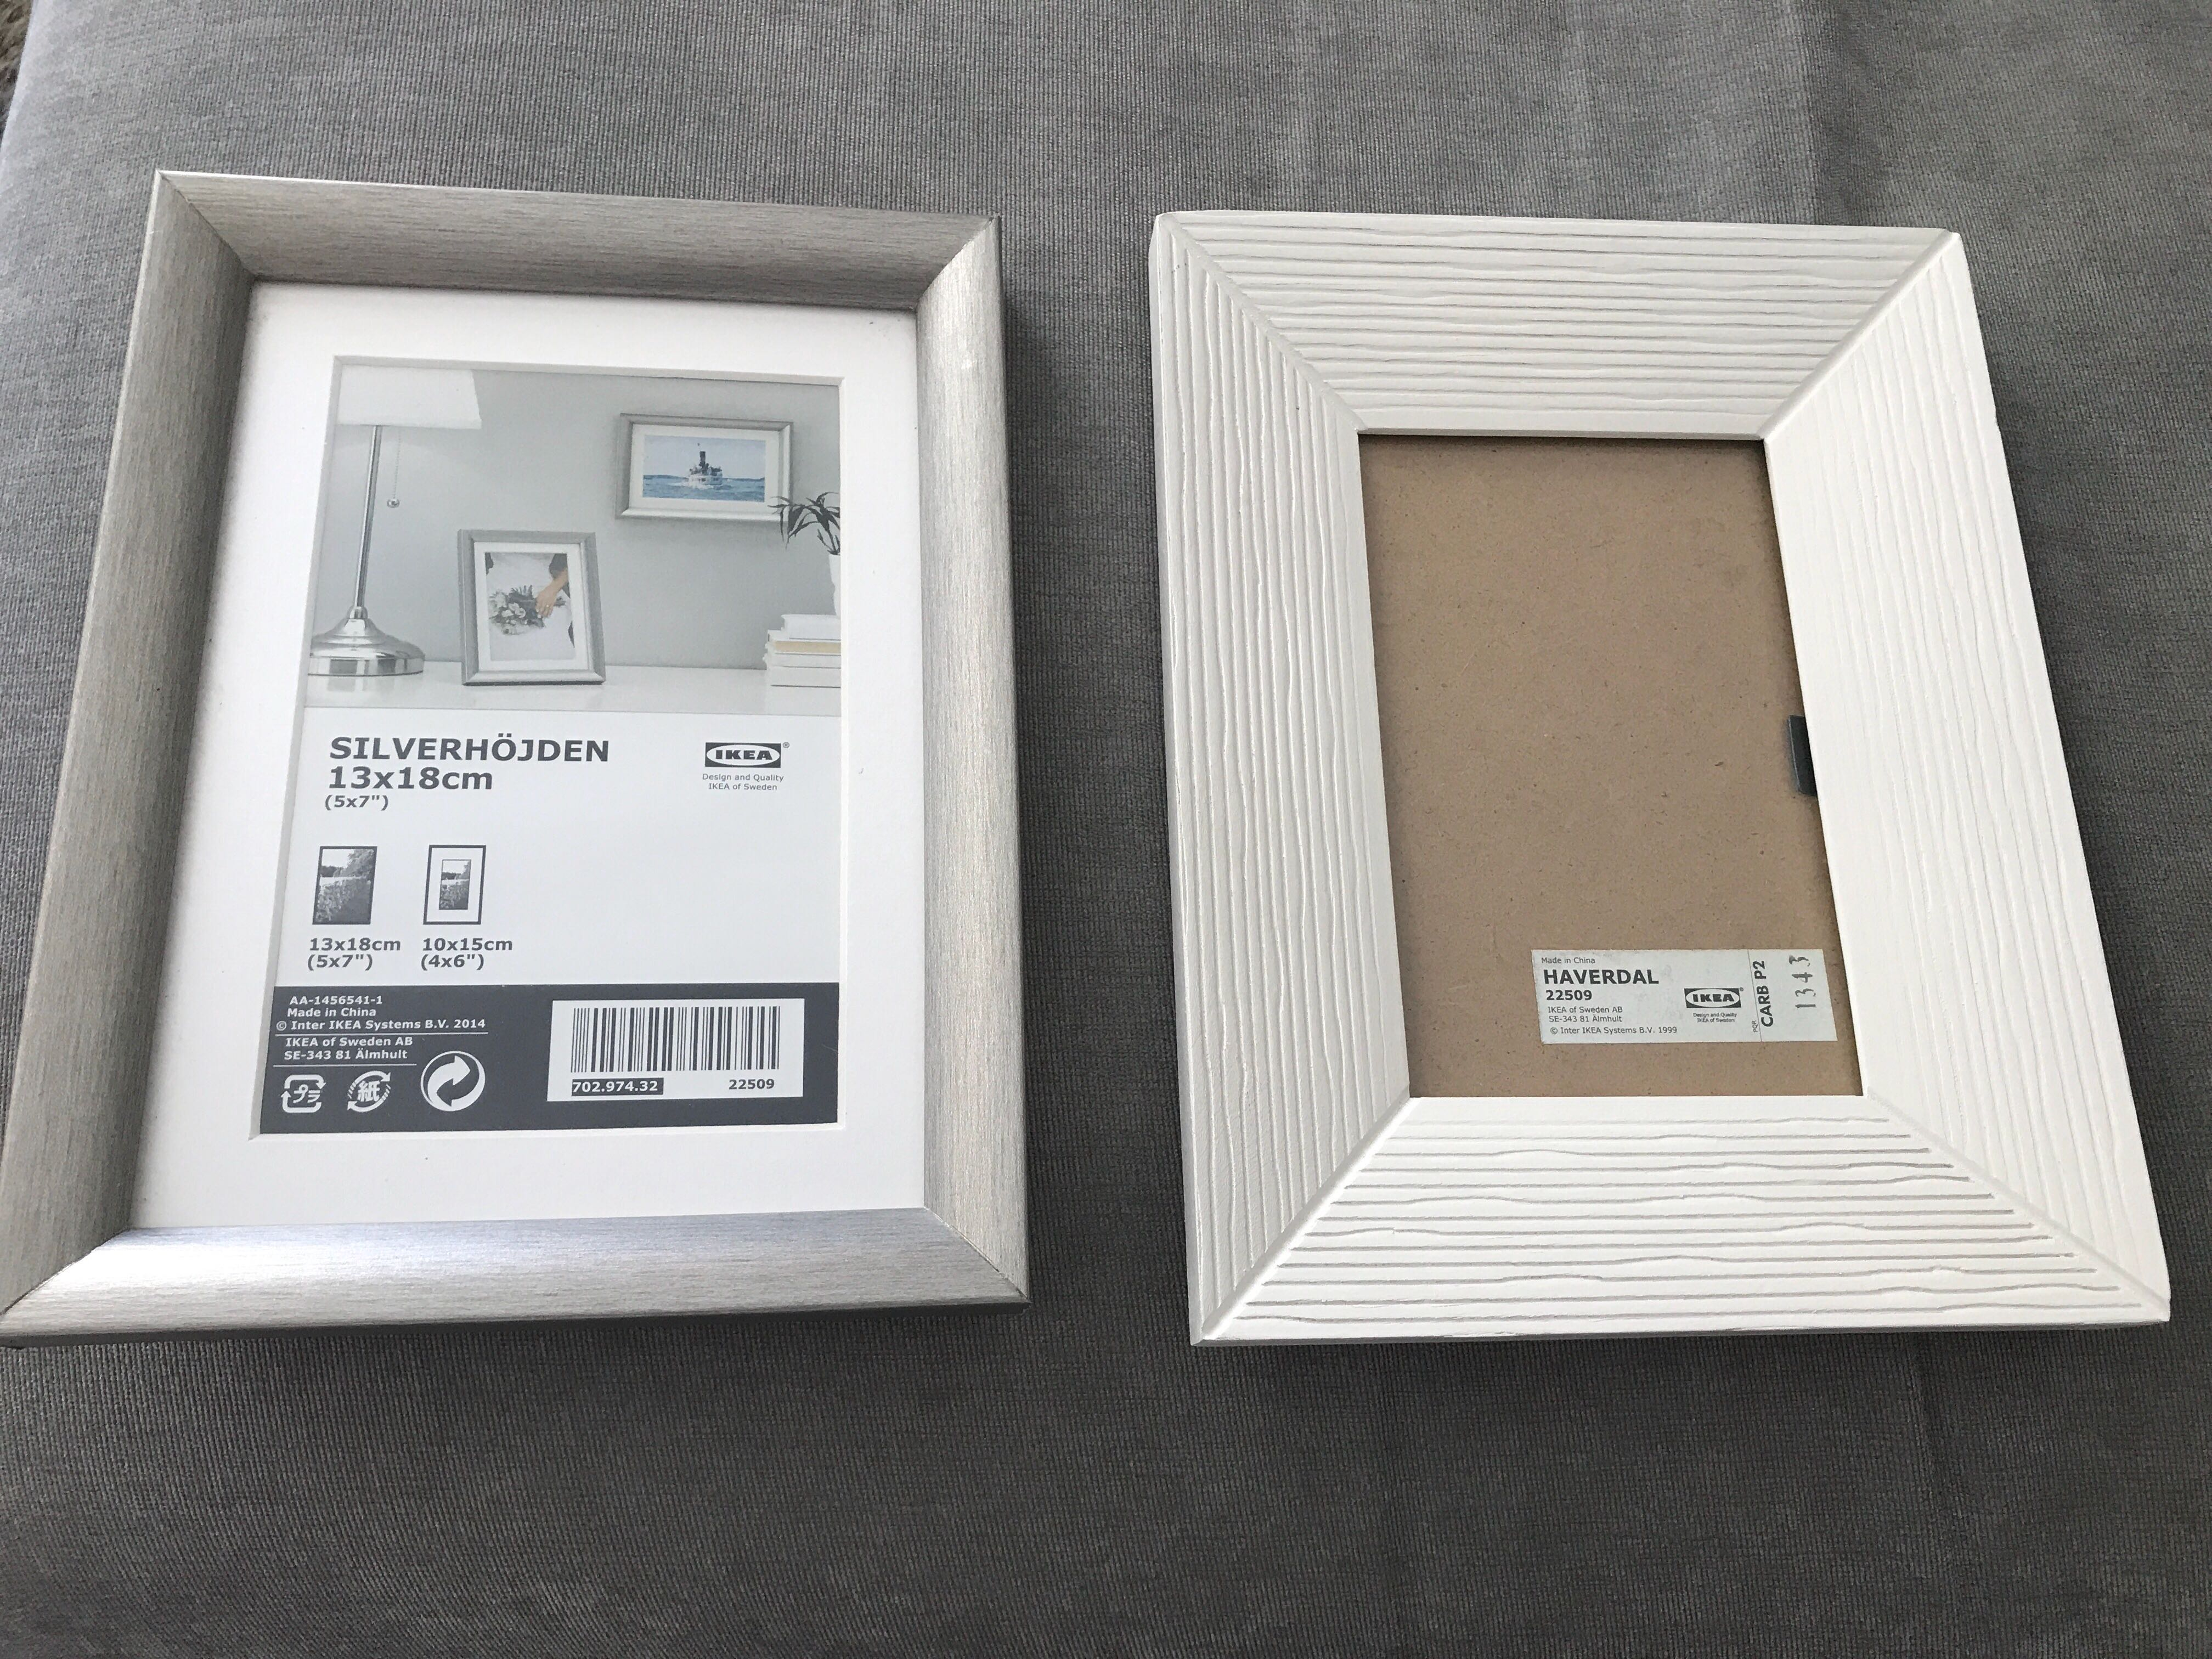 Ikea Photo Frame, Furniture, Home Decor, Others on Carousell